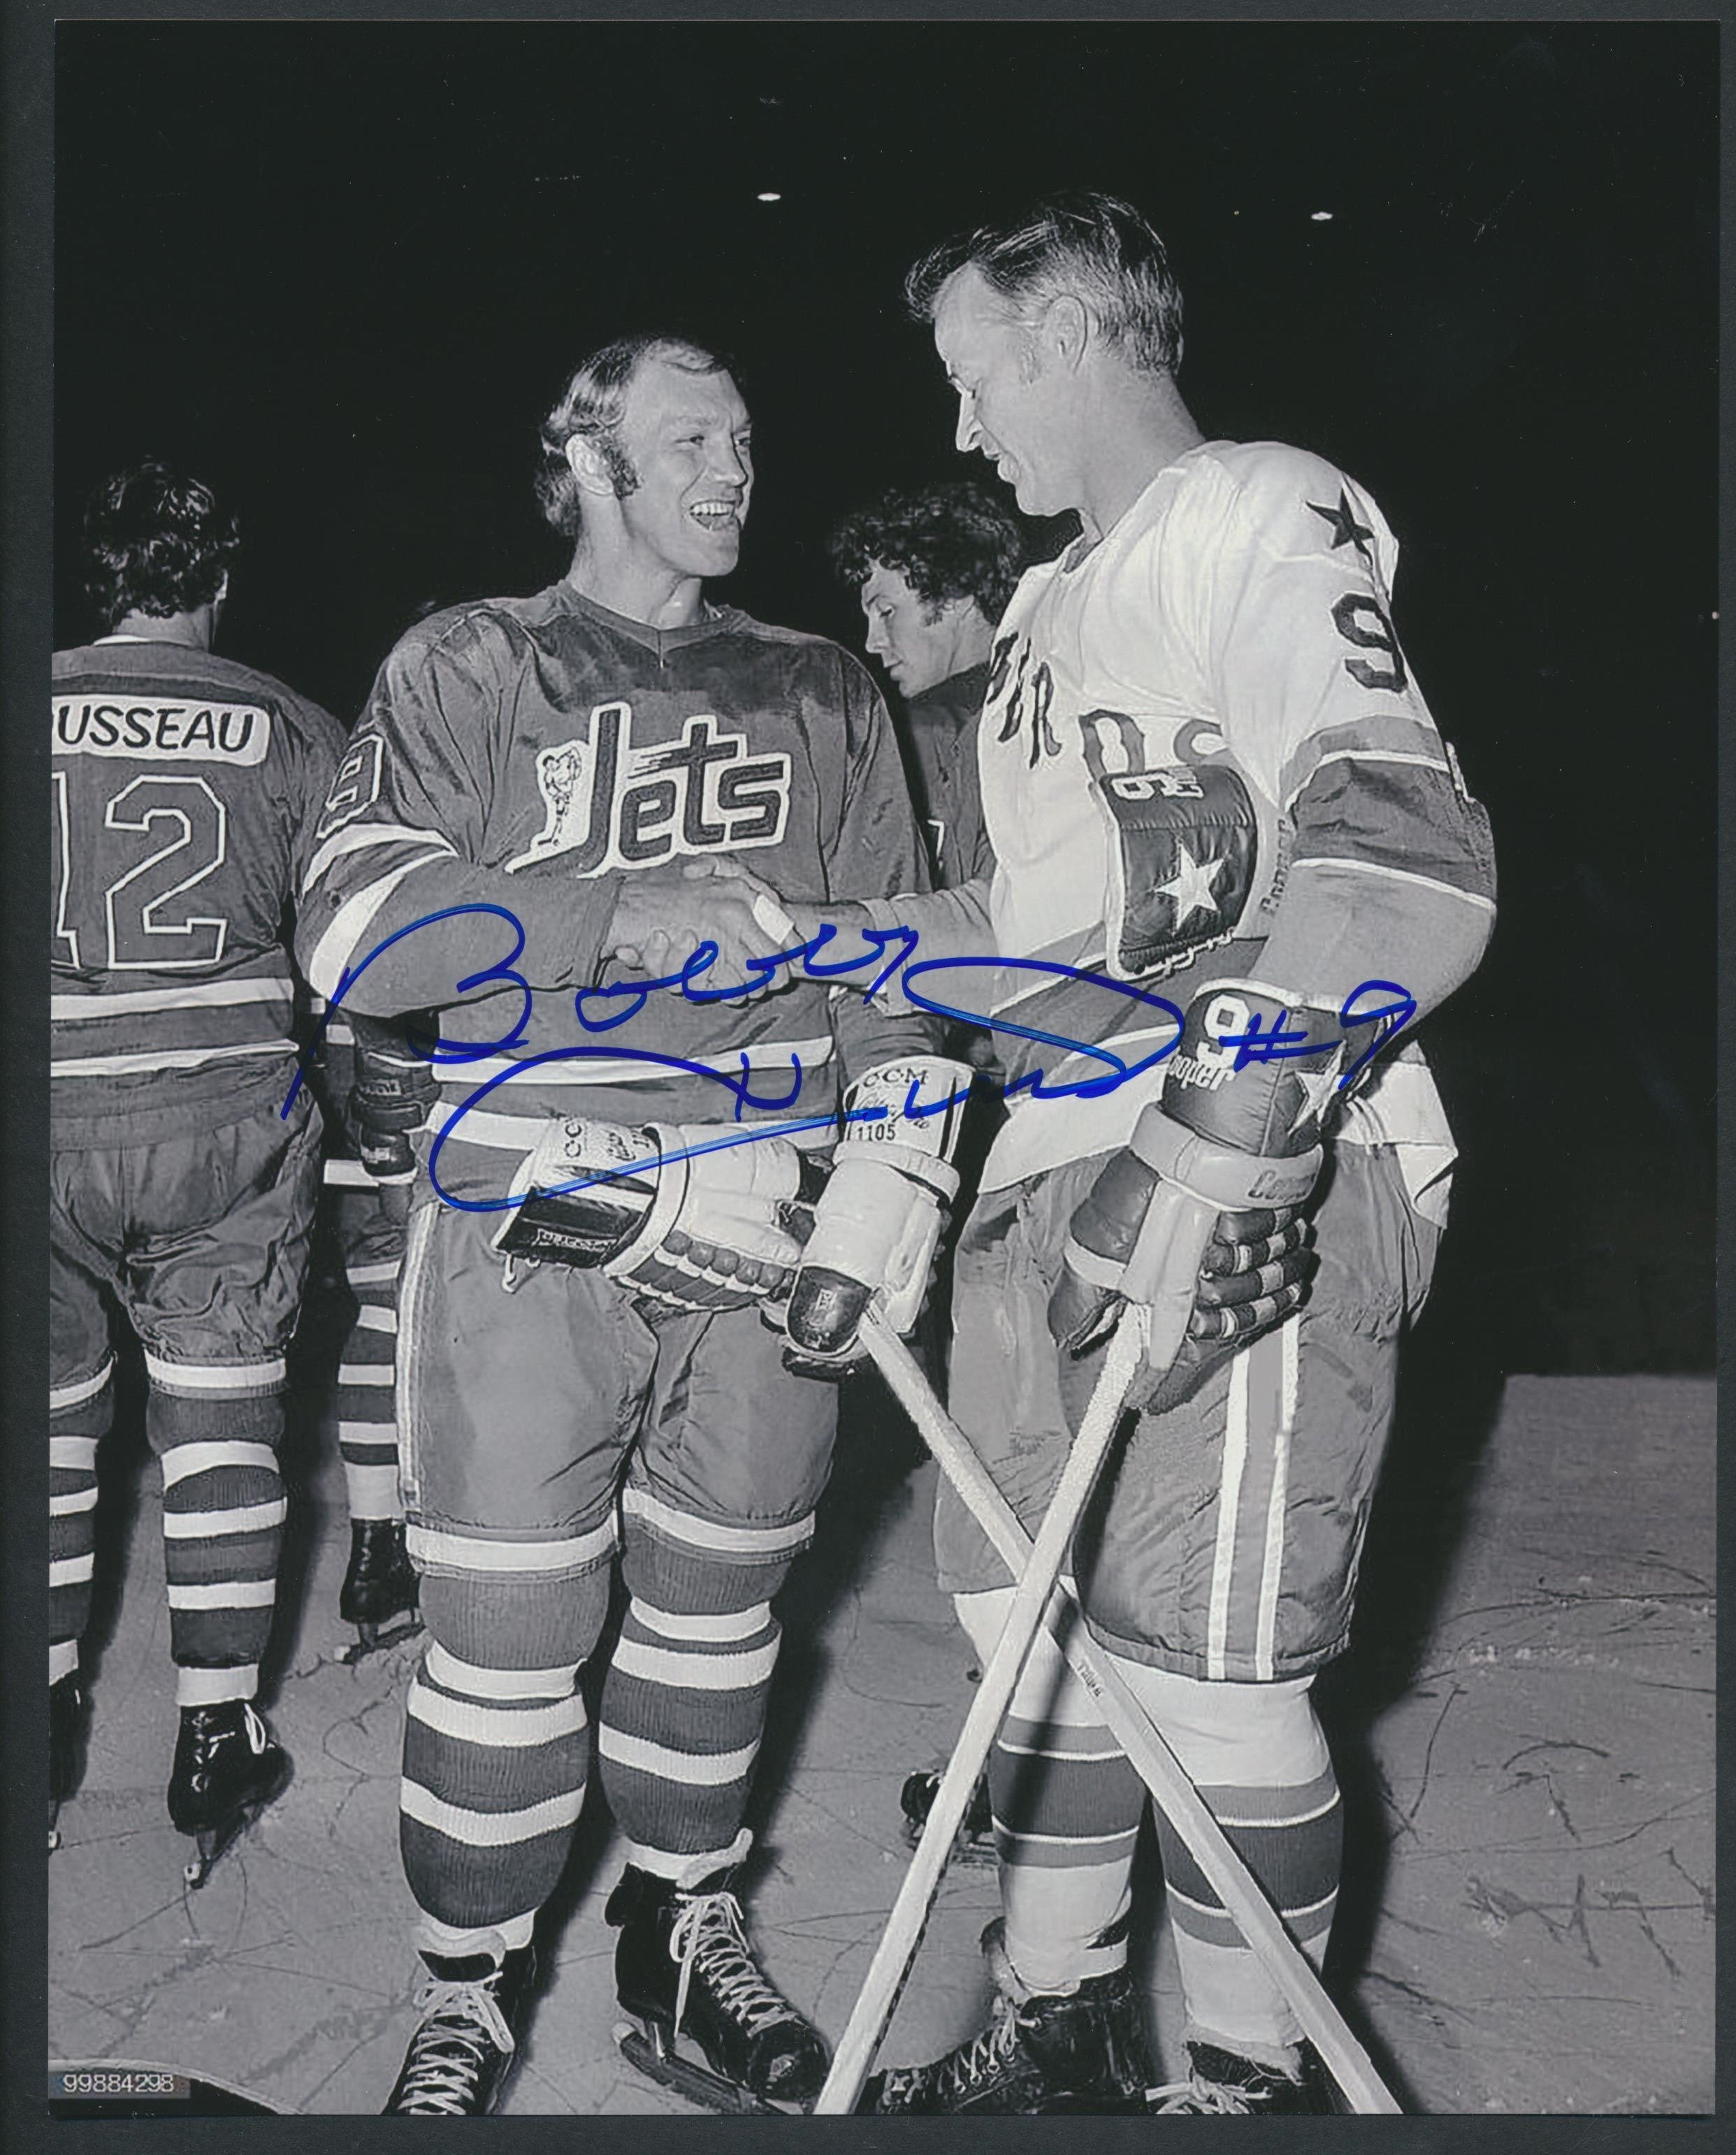 Original Autographed Bobby Hull Photo with Gordie Howe  c/w COA  Winnipeg Jets & Houston Aeros  NHL Hockey Memorabilia